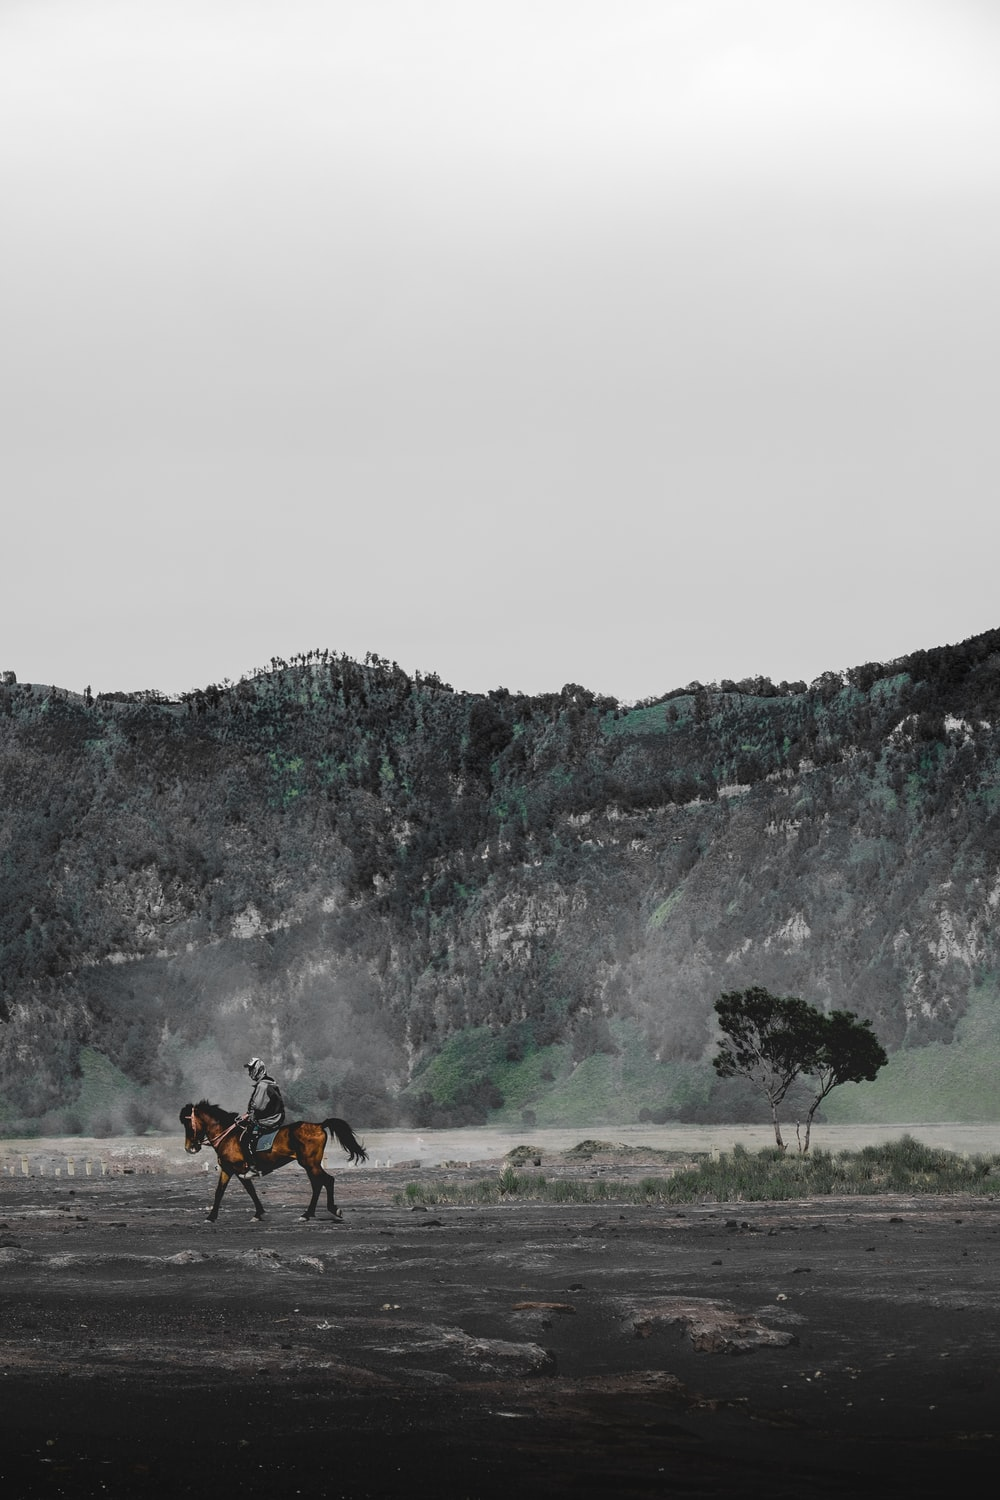 person riding on horse during daytime